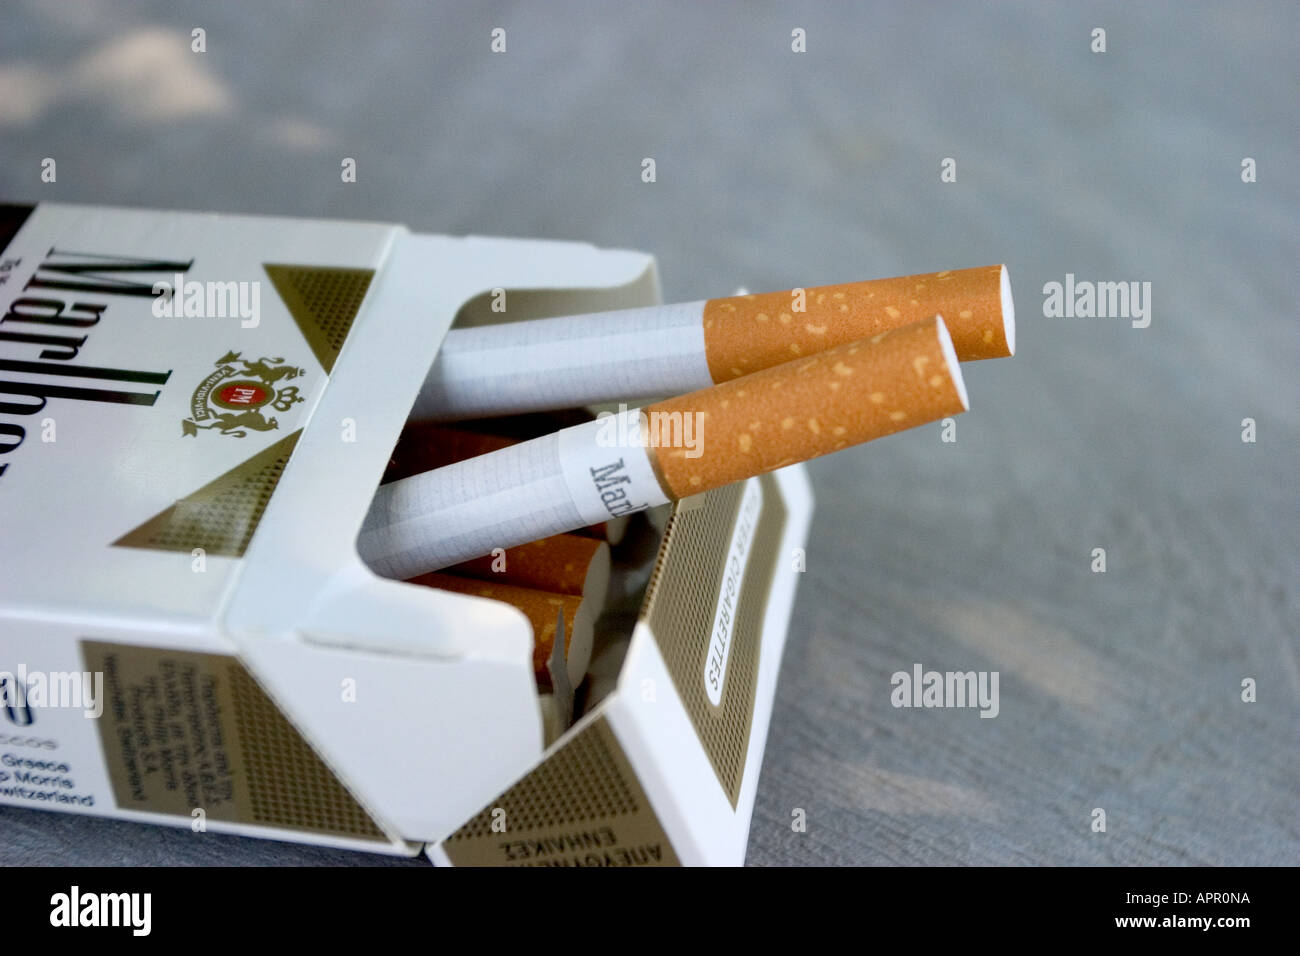 How much LM cigarettes cost in United Kingdom